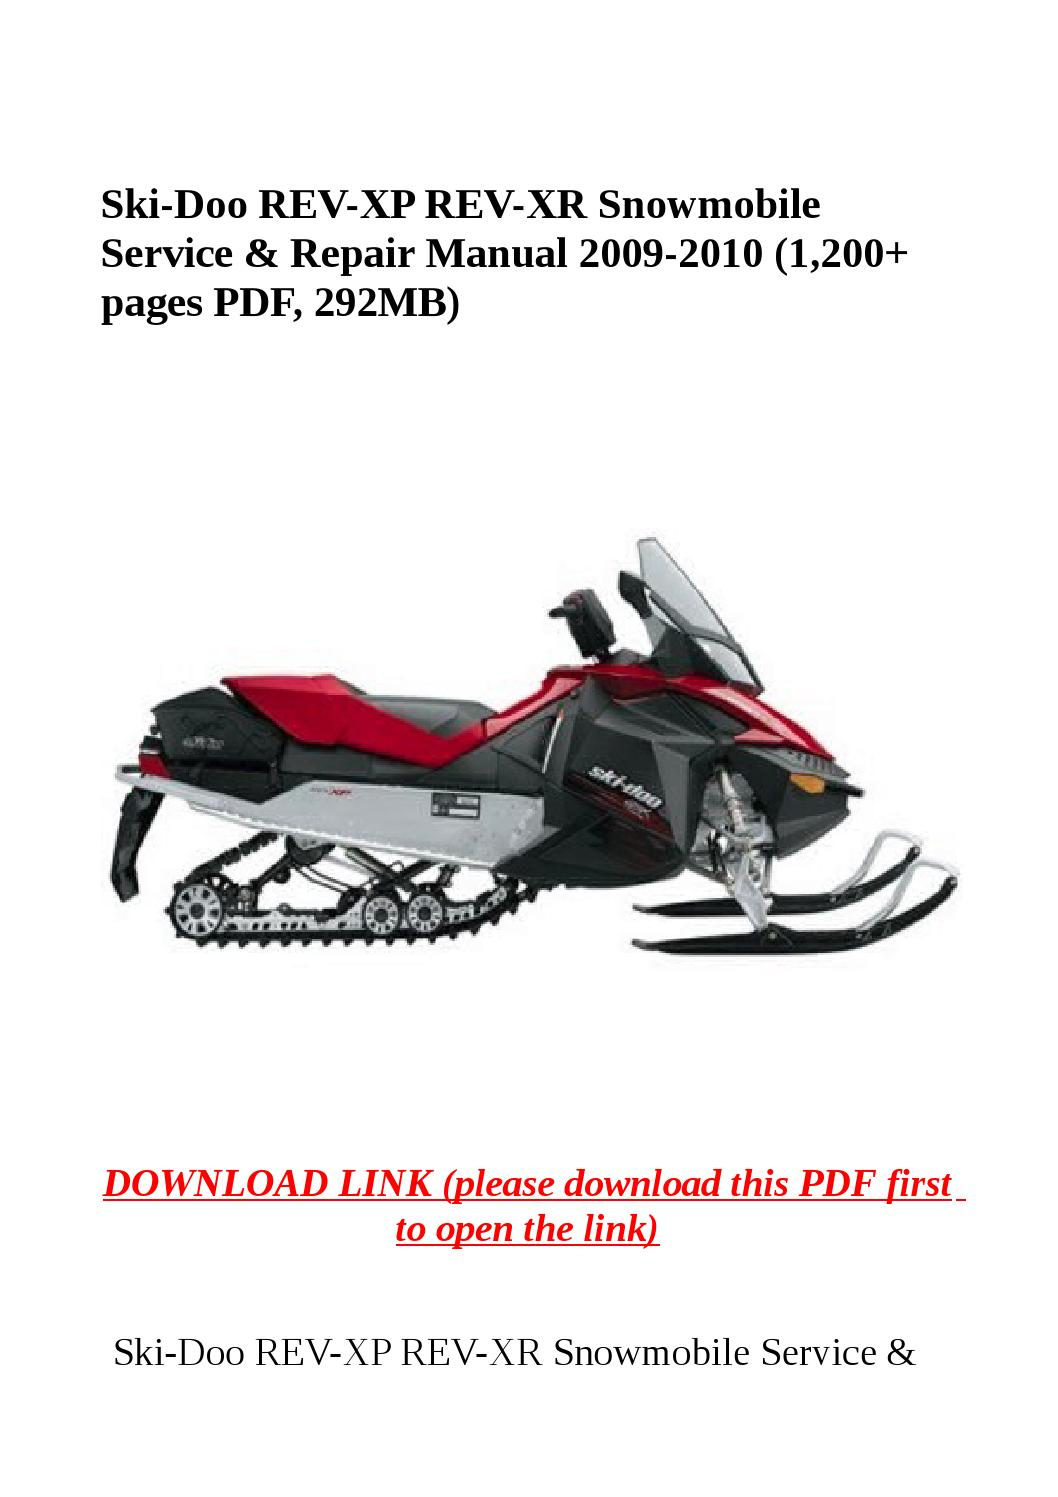 ski doo snowmobile parts diagram 2000 yamaha banshee wiring rev xp xr service and repair manual